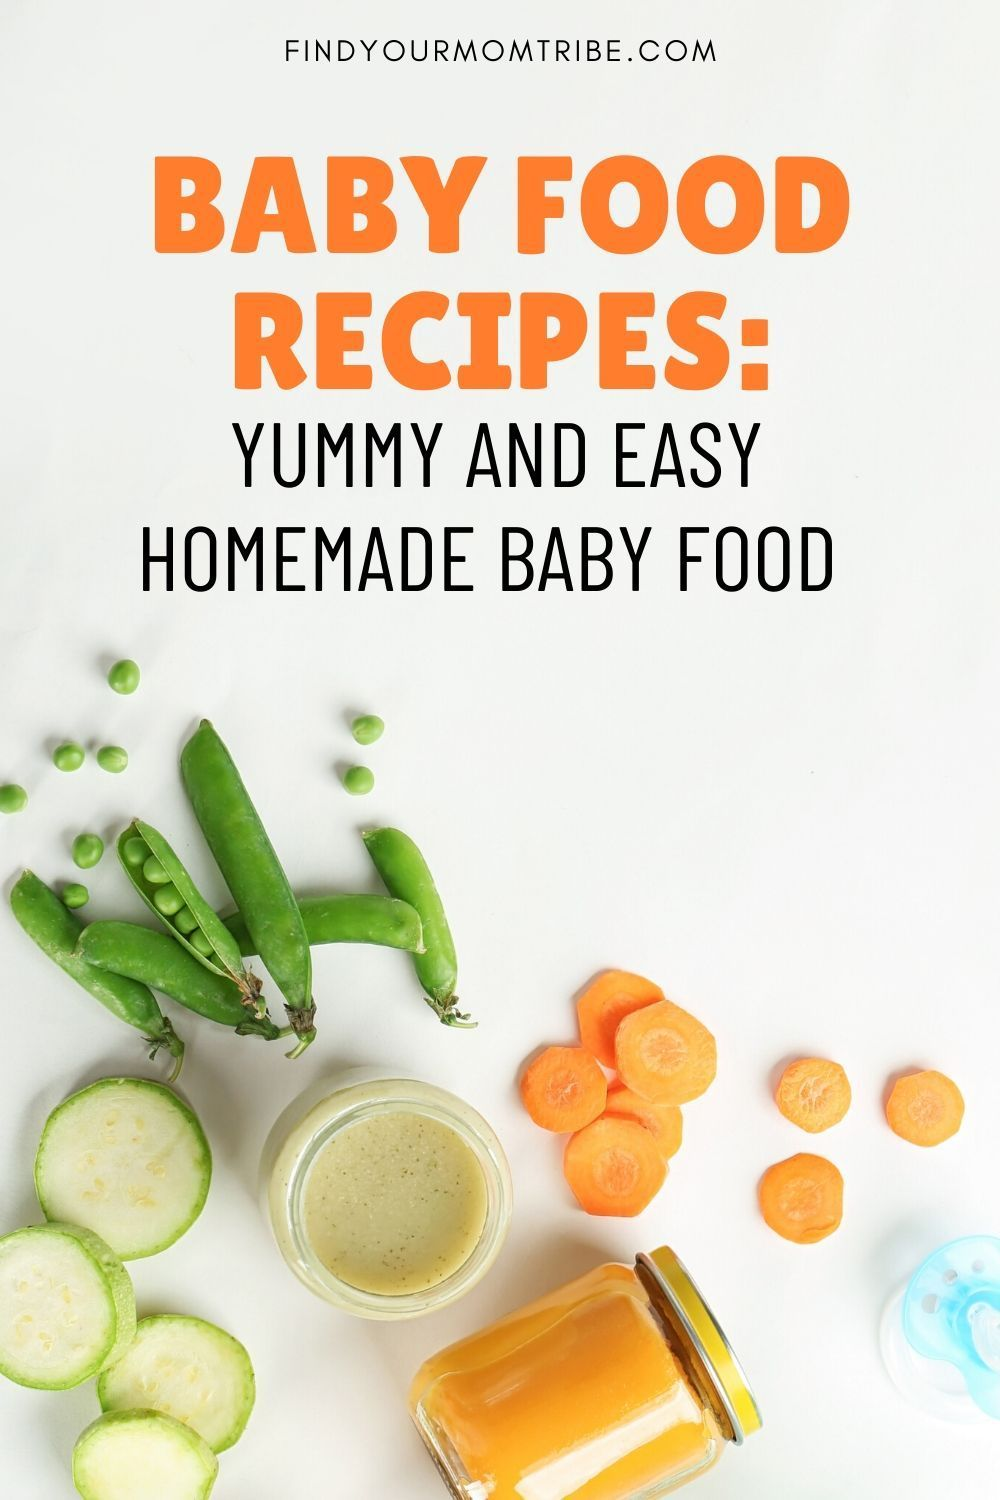 If you're looking to start your baby on solid foods, these DIY baby food recipes are sure to turn you into your baby's favorite chef! #babyfood #homemadebabyfood #babyfoodrecipes #healthybabyfood #babysolidfood #babyrecipes #babypuree #babypureerecipes #makingbabyfood #organicbabyfood #howtomakebabyfood #makingbabyfood #bestbabyfood #makeyourownbabyfood #babyfirstfood #naturalbabyfood #findyourmomtribe